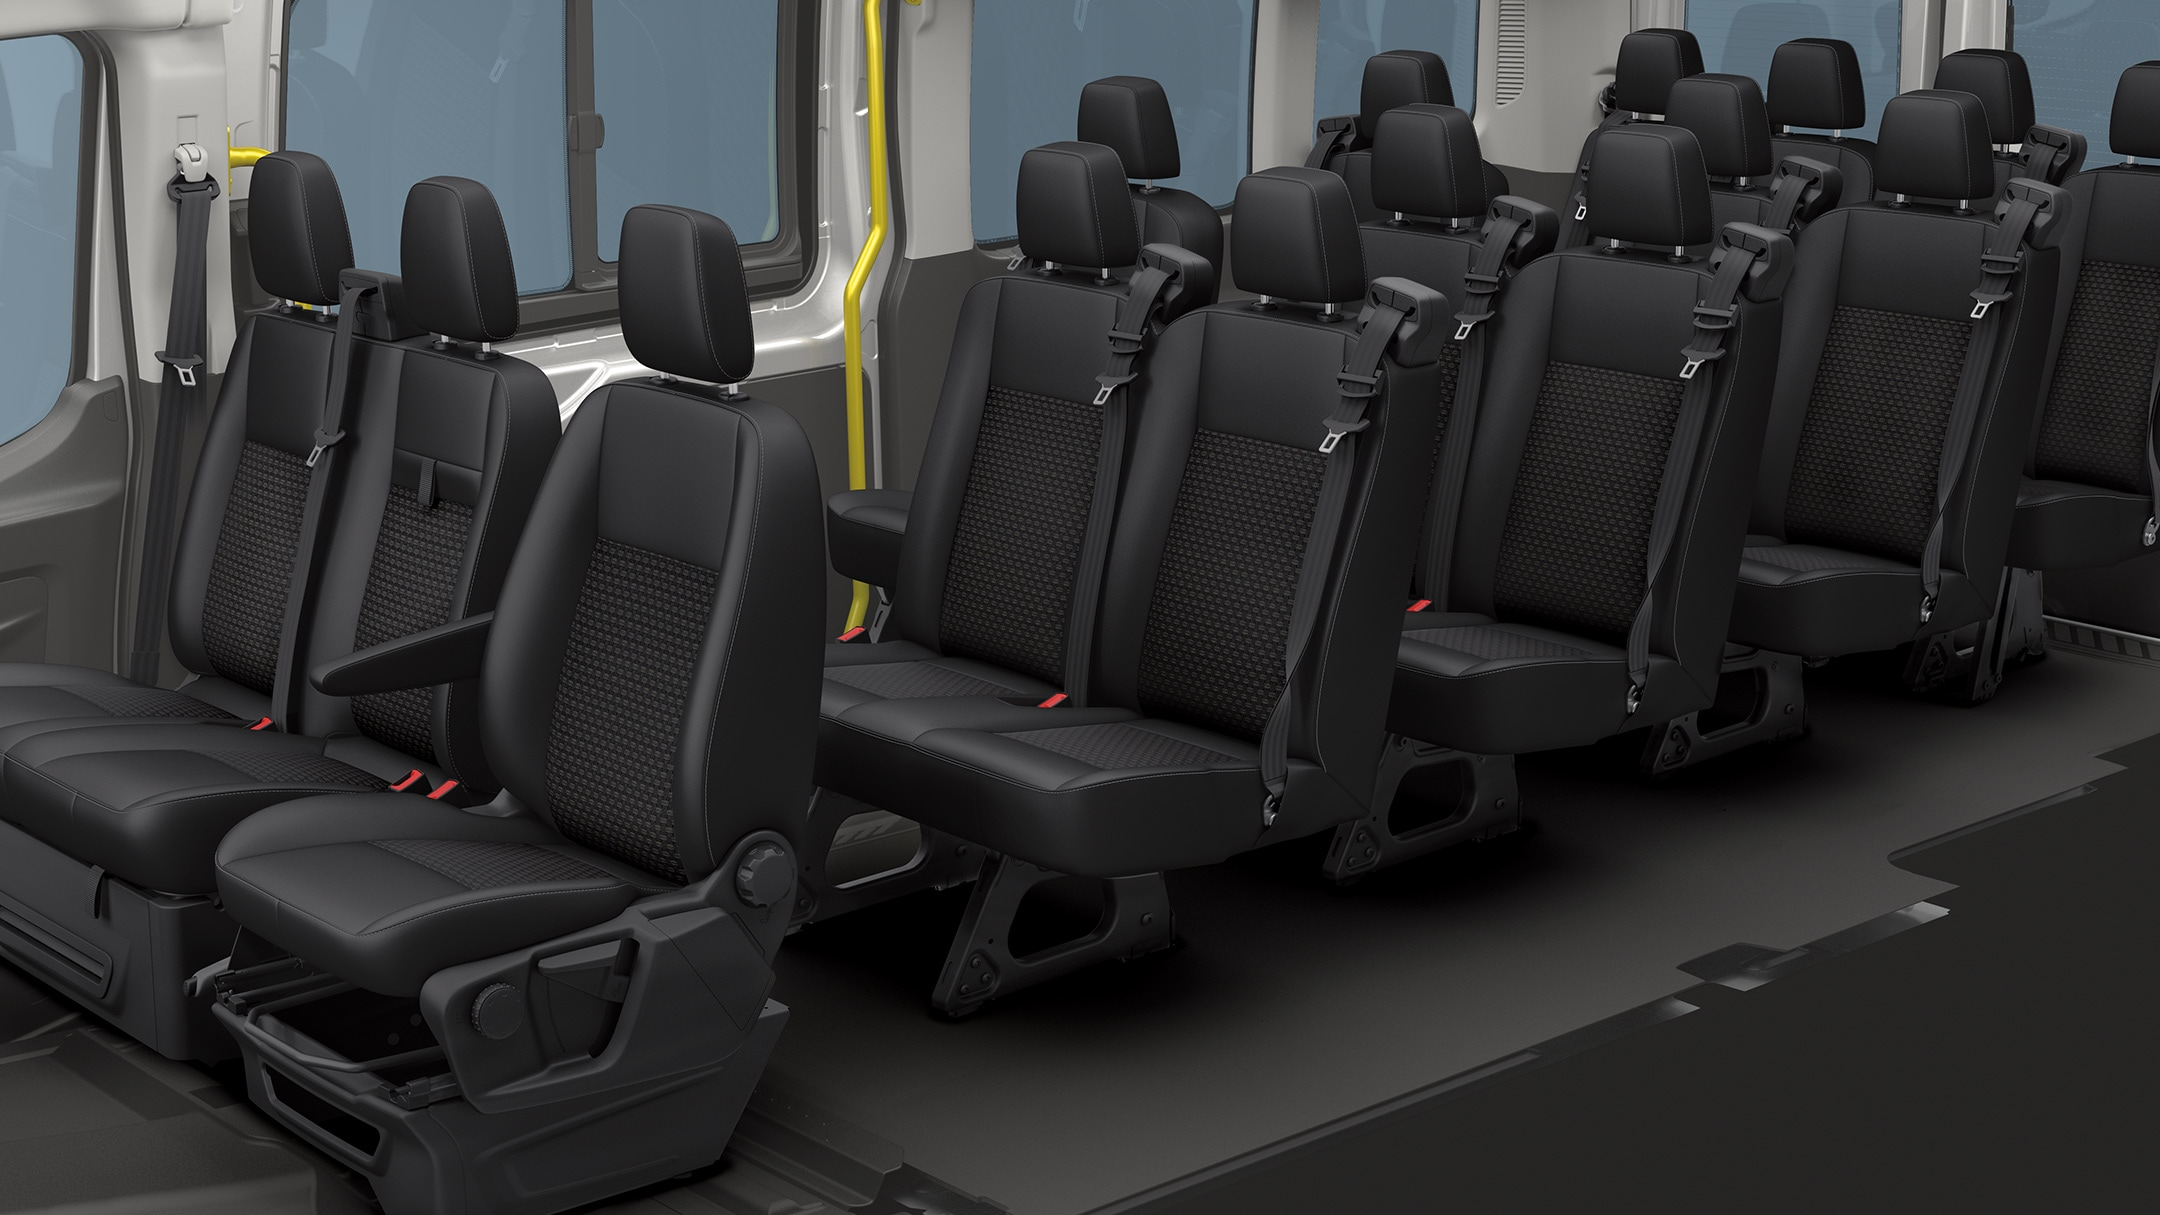 All New Ford Transit Minibus interior cabin view